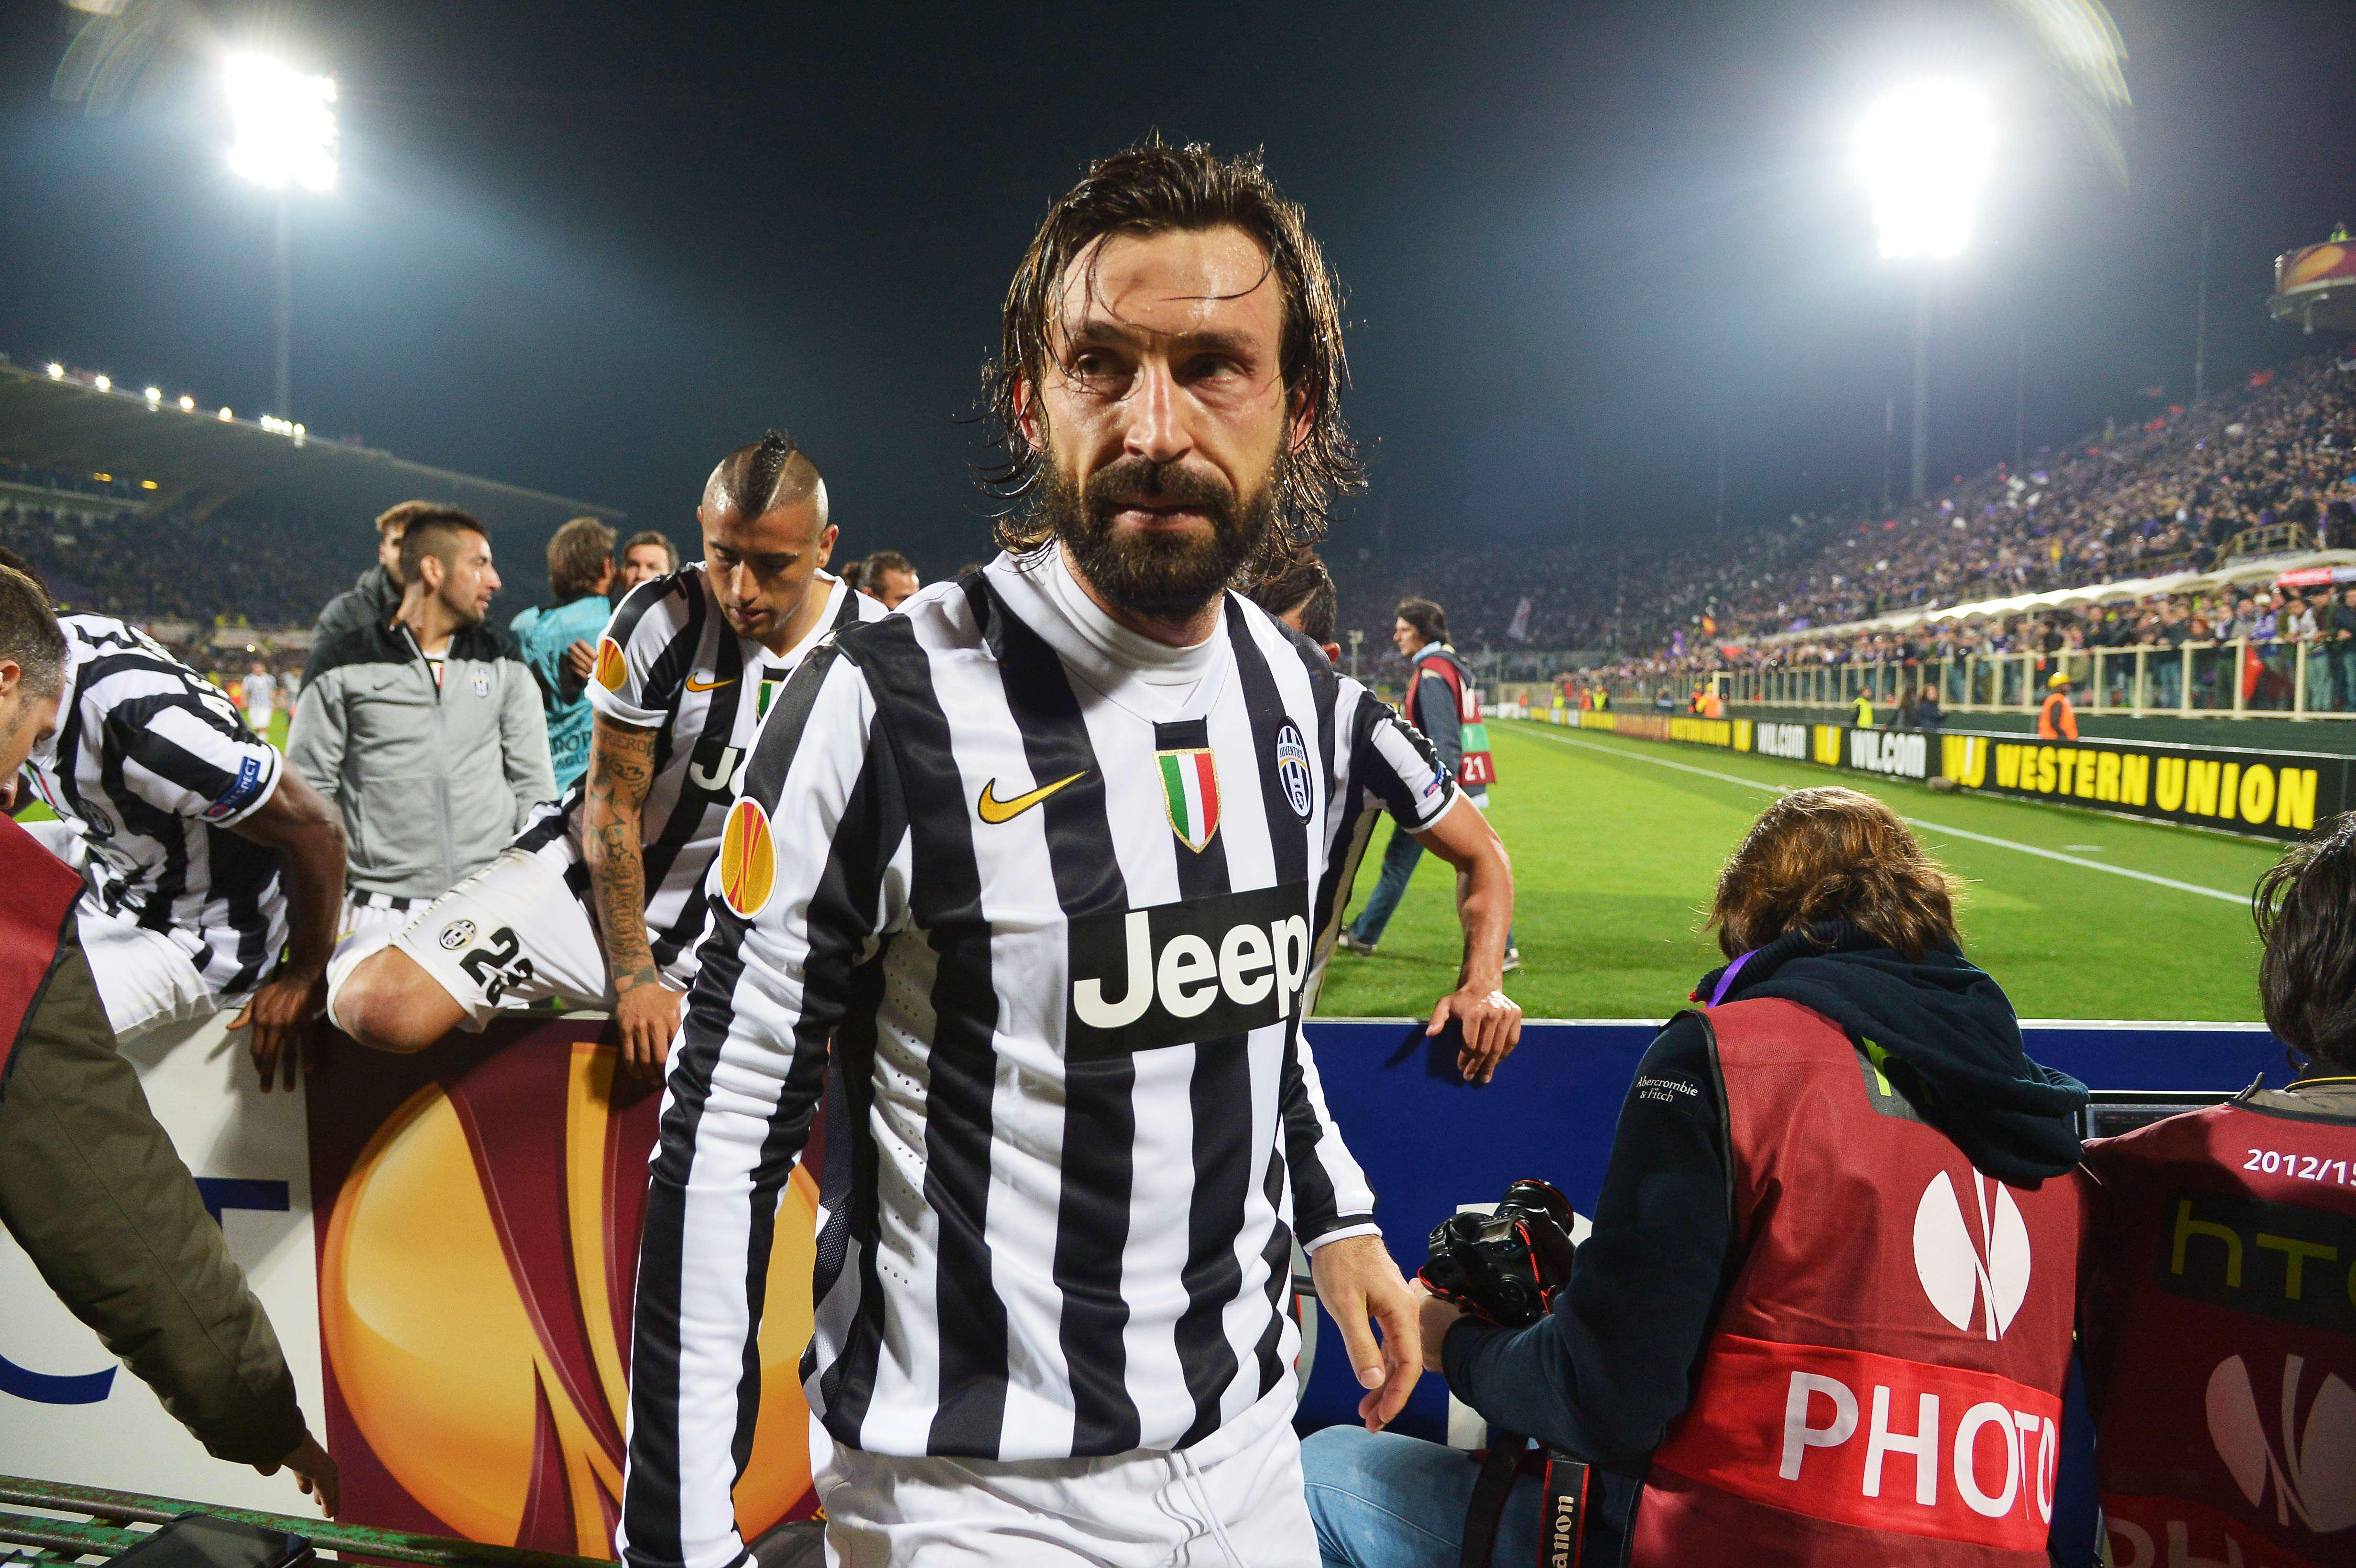 Pirlo has played with some of the greatest ever